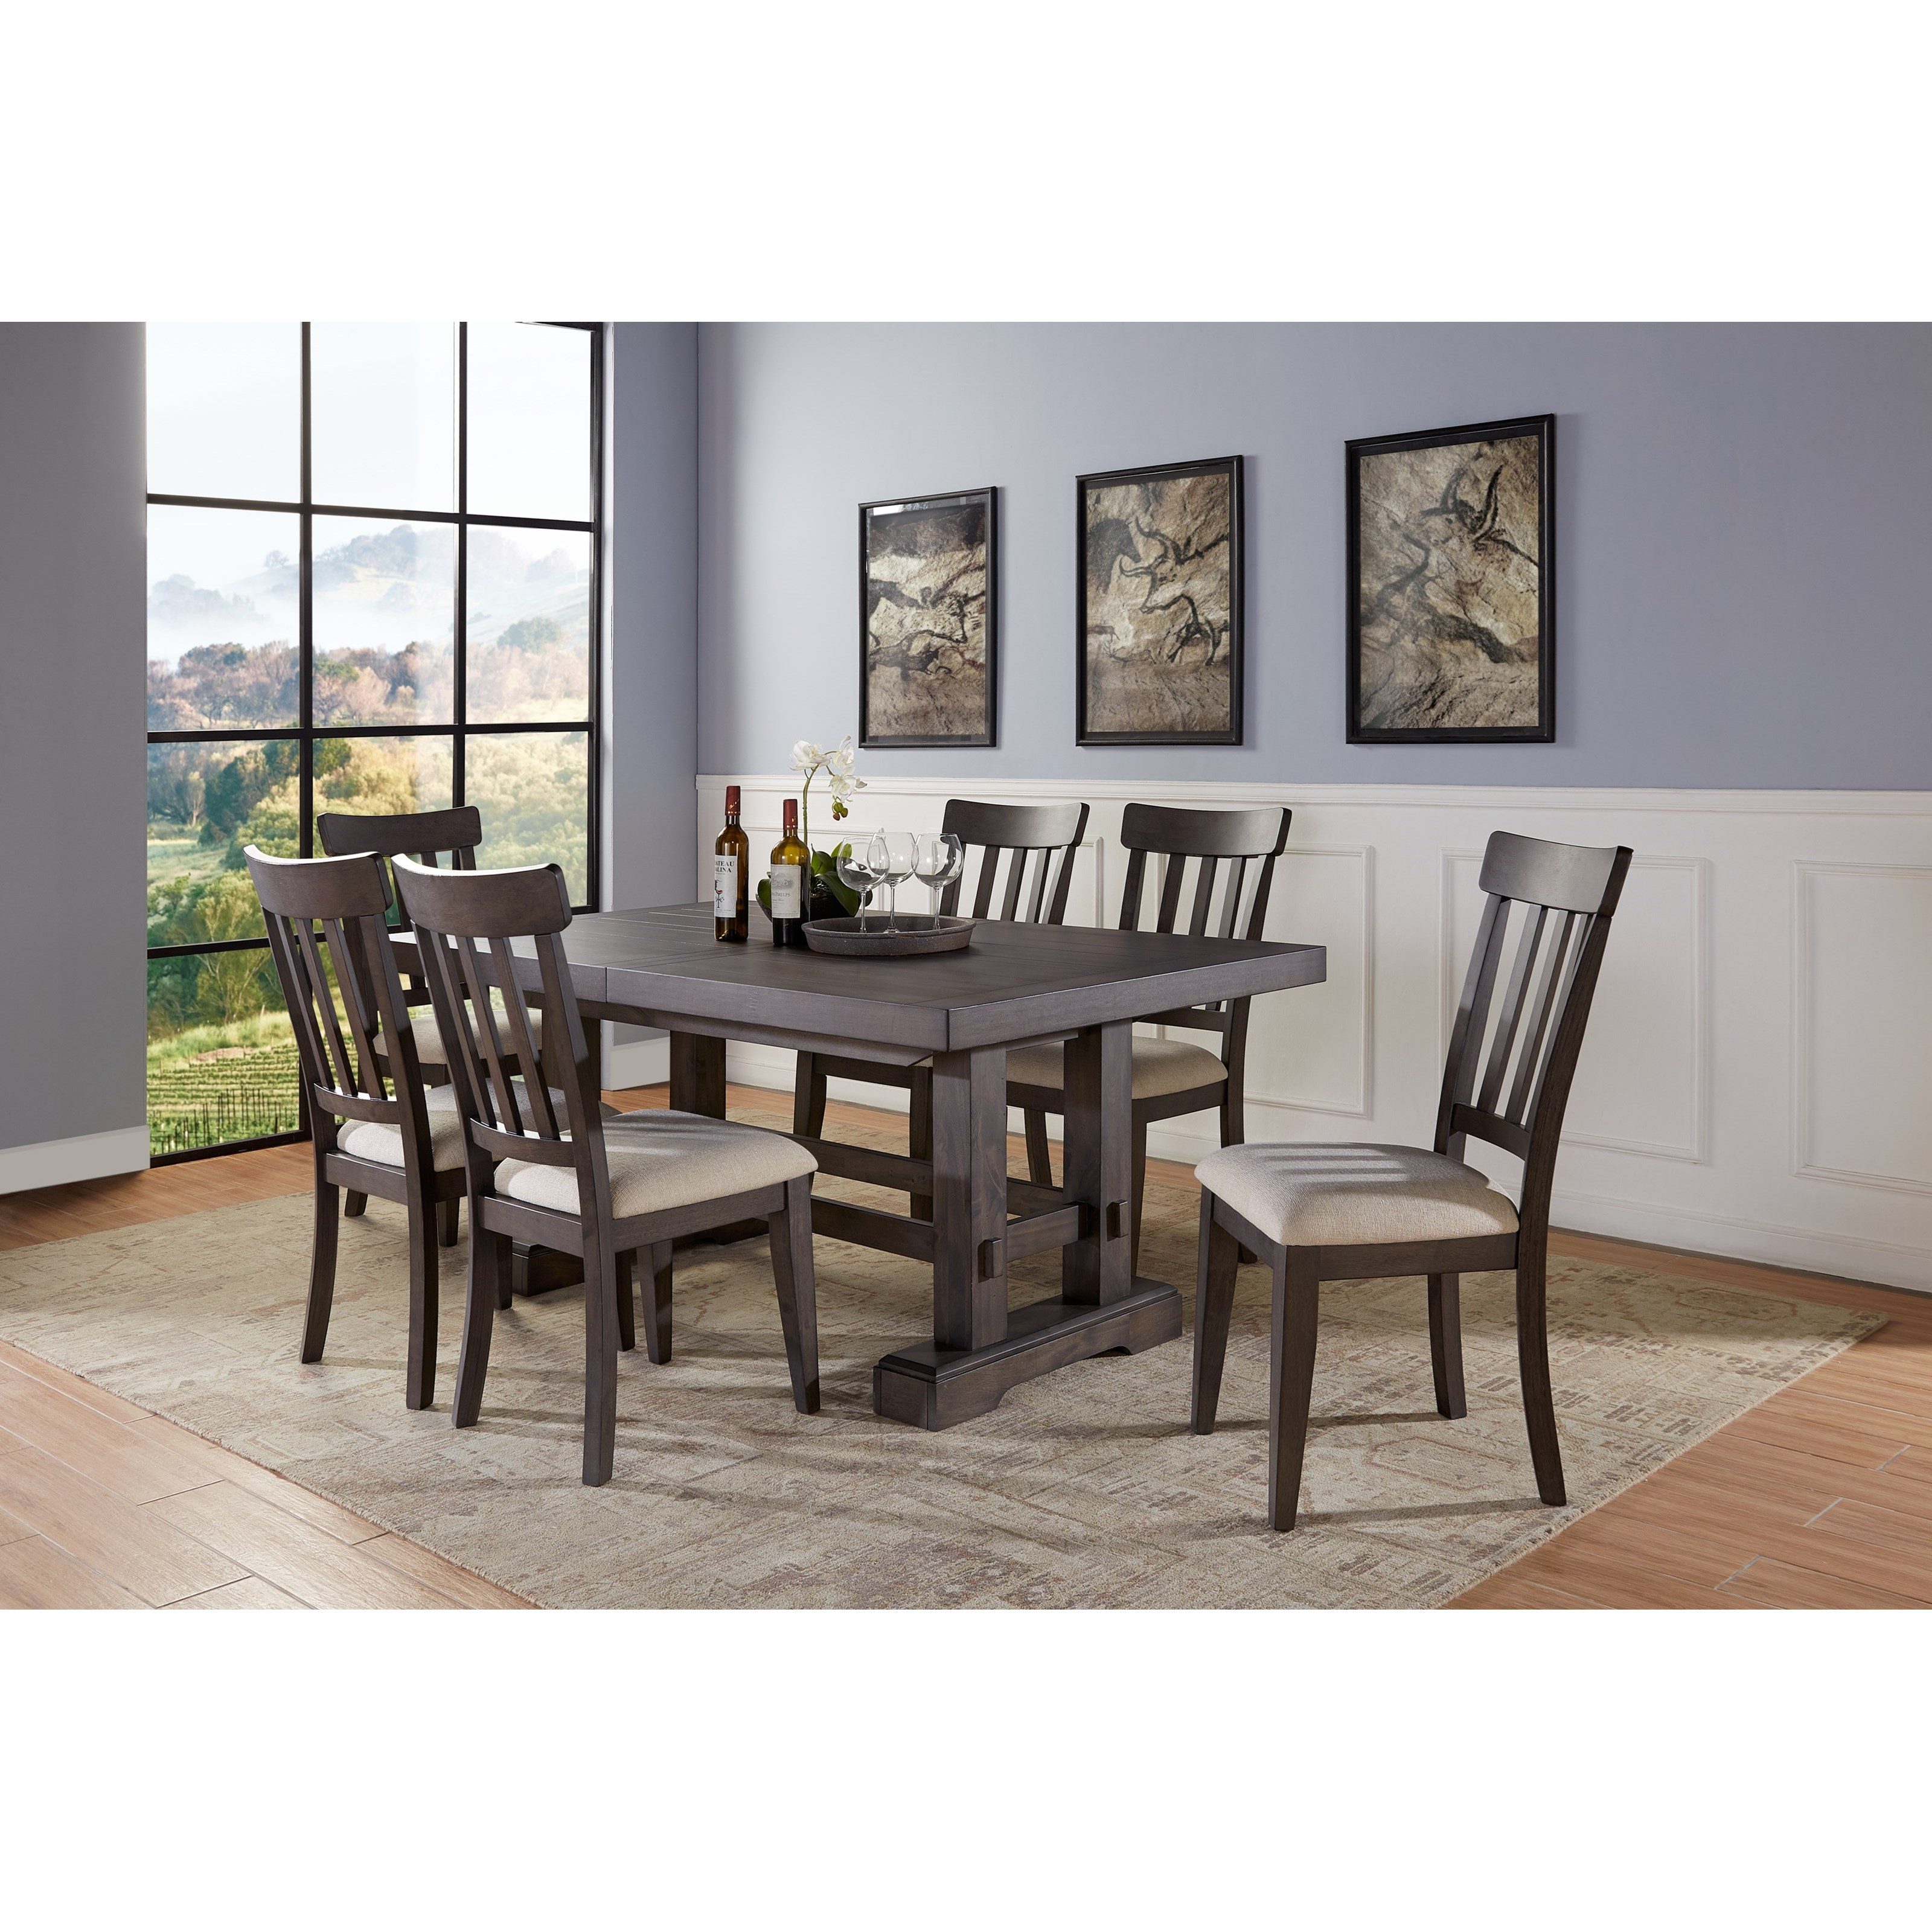 Napa 7-Piece Table and Chair Set  by Steve Silver at Walker's Furniture